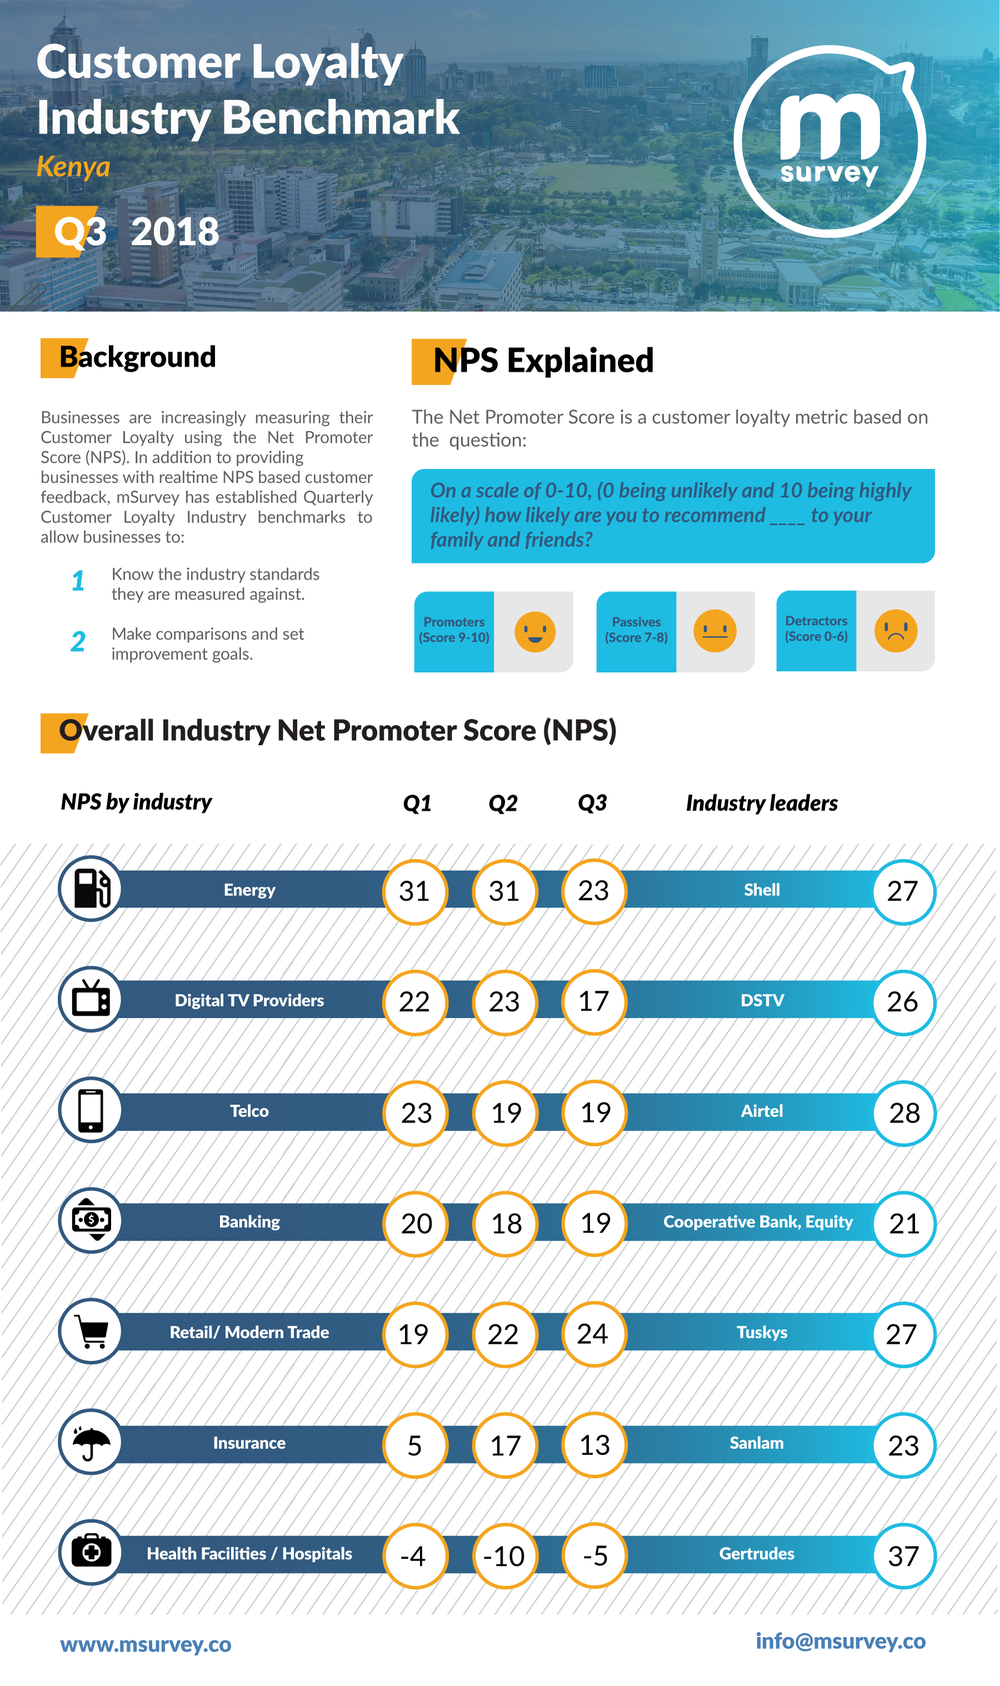 mSurvey Customer Loyalty Industry Benchmark Infographic for Quarter 3 2018